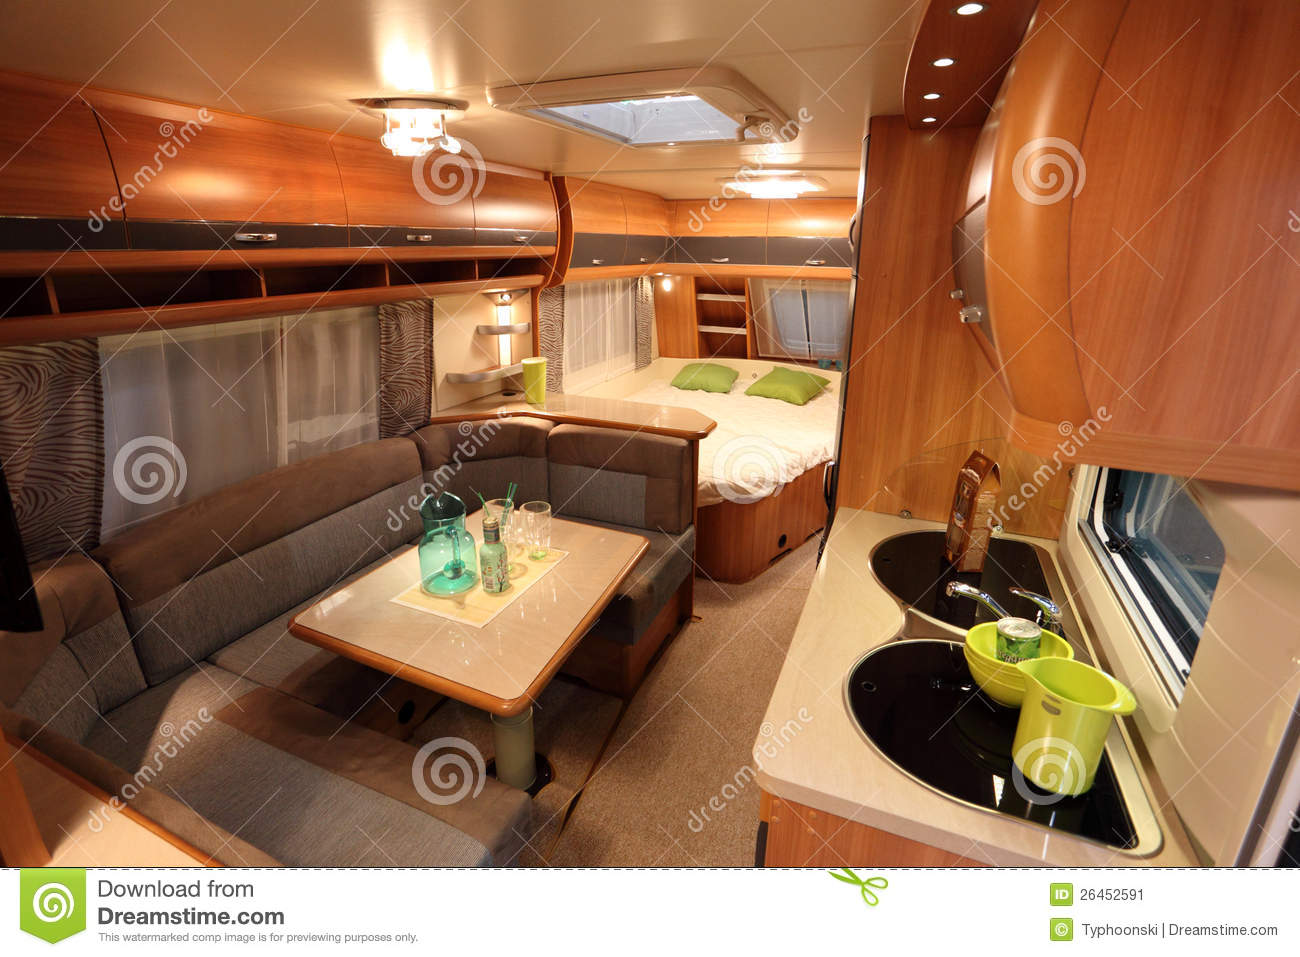 https://thumbs.dreamstime.com/z/interior-modern-camper-van-26452591.jpg